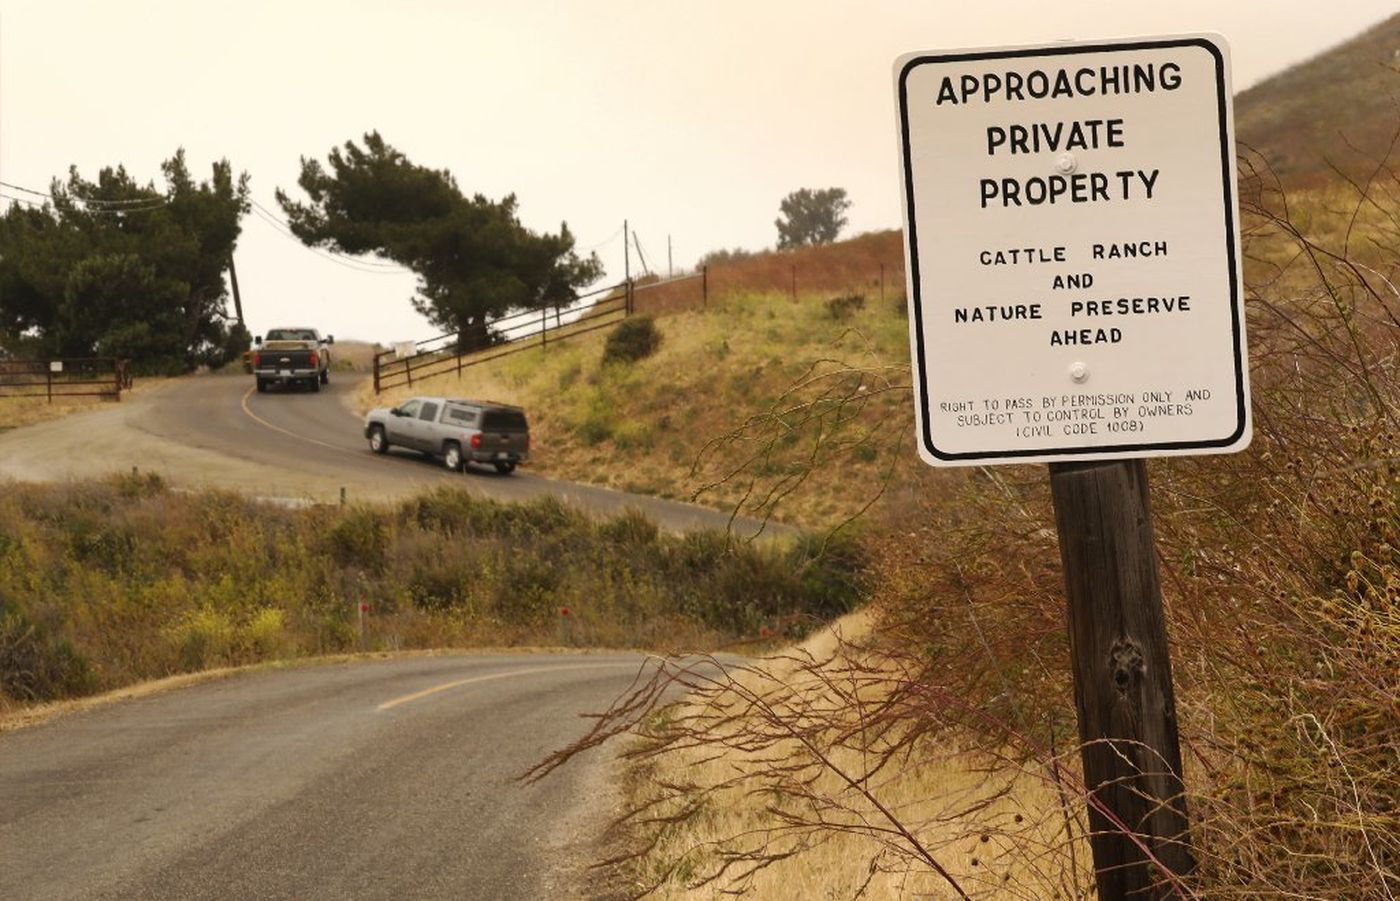 Vehicles navigate the narrow, curvy Hollister Ranch Road with signs warning of trespassing. In a settlement agreement with the homeowners association, state coastal officials agreed to give up its claims of public access by land. (Al Seib / Los Angeles Times)